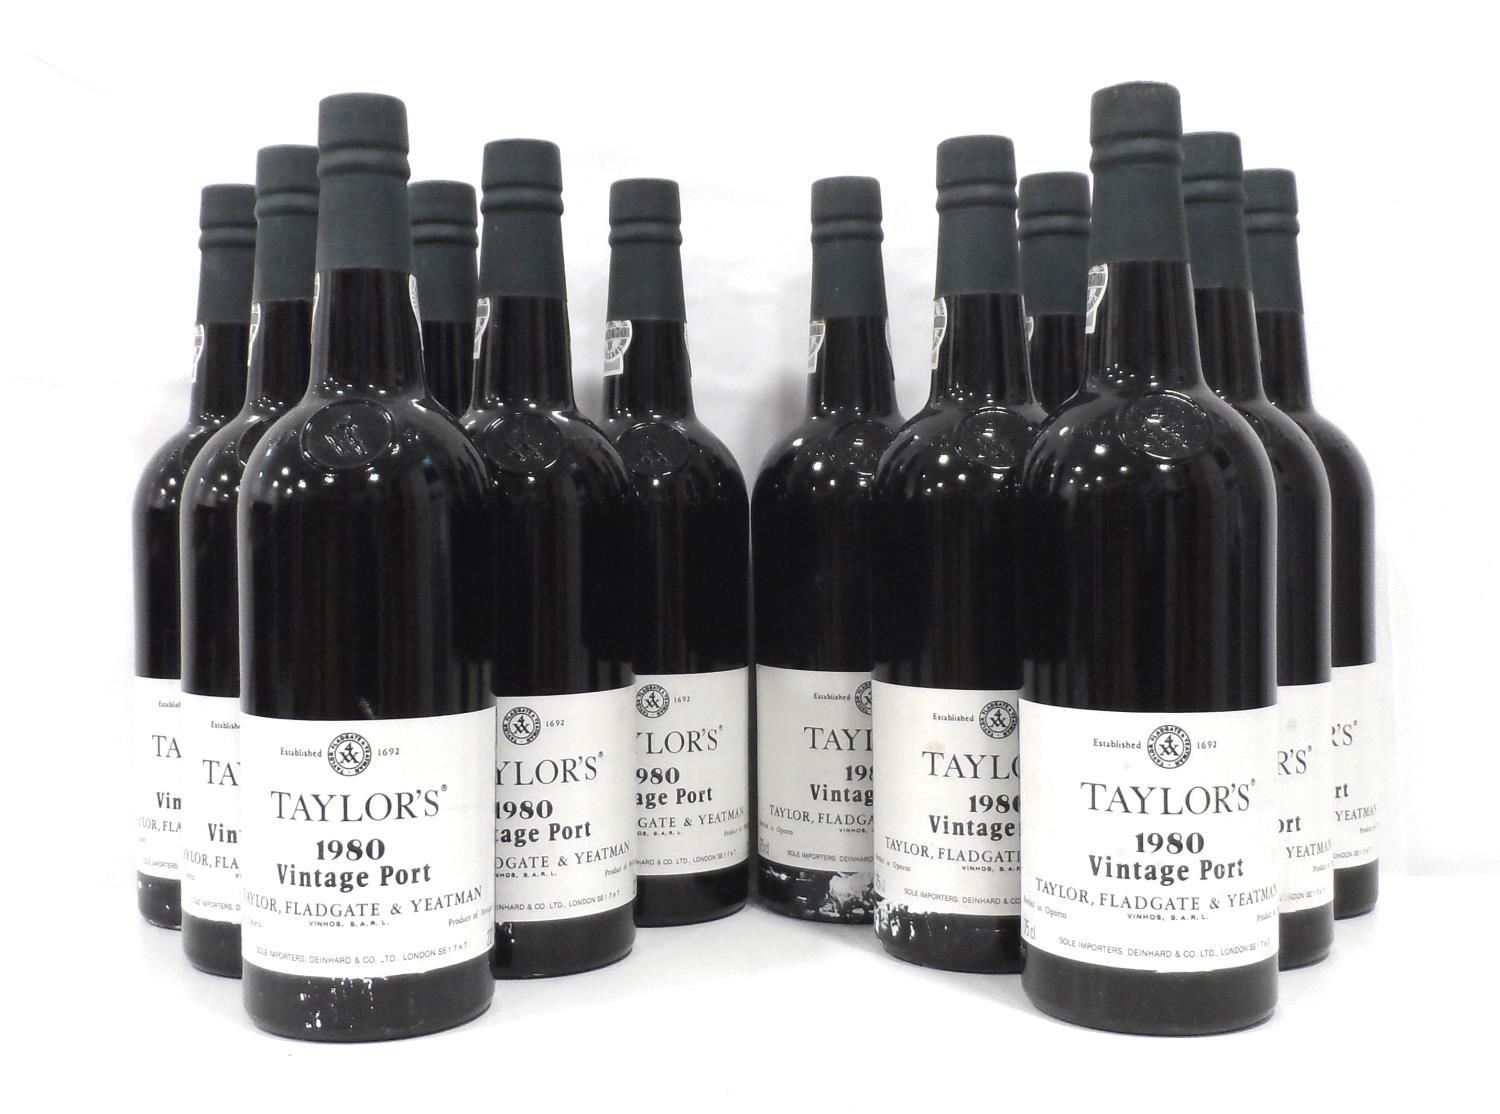 Lot 45 - TAYLOR'S 1980 VINTAGE PORT A case of Taylor's 1980 Vintage Port produced in a year that seems to